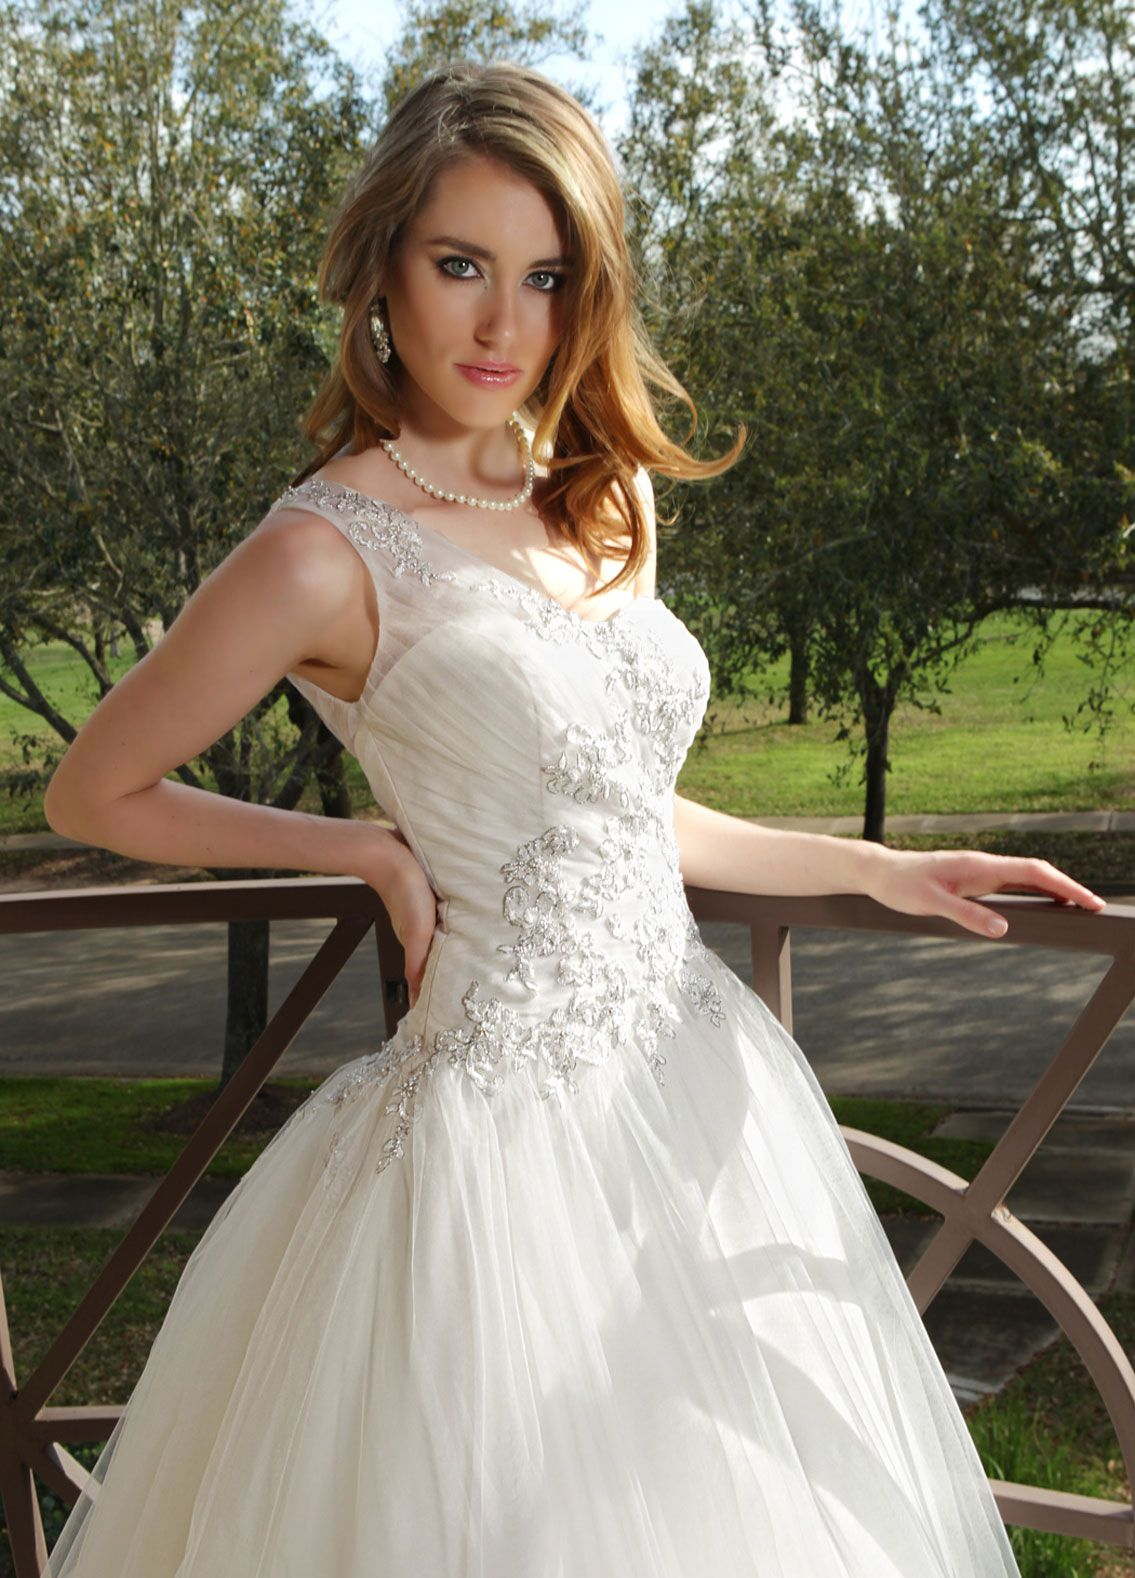 Da vinci bridal style wedding ideas for anita pinterest